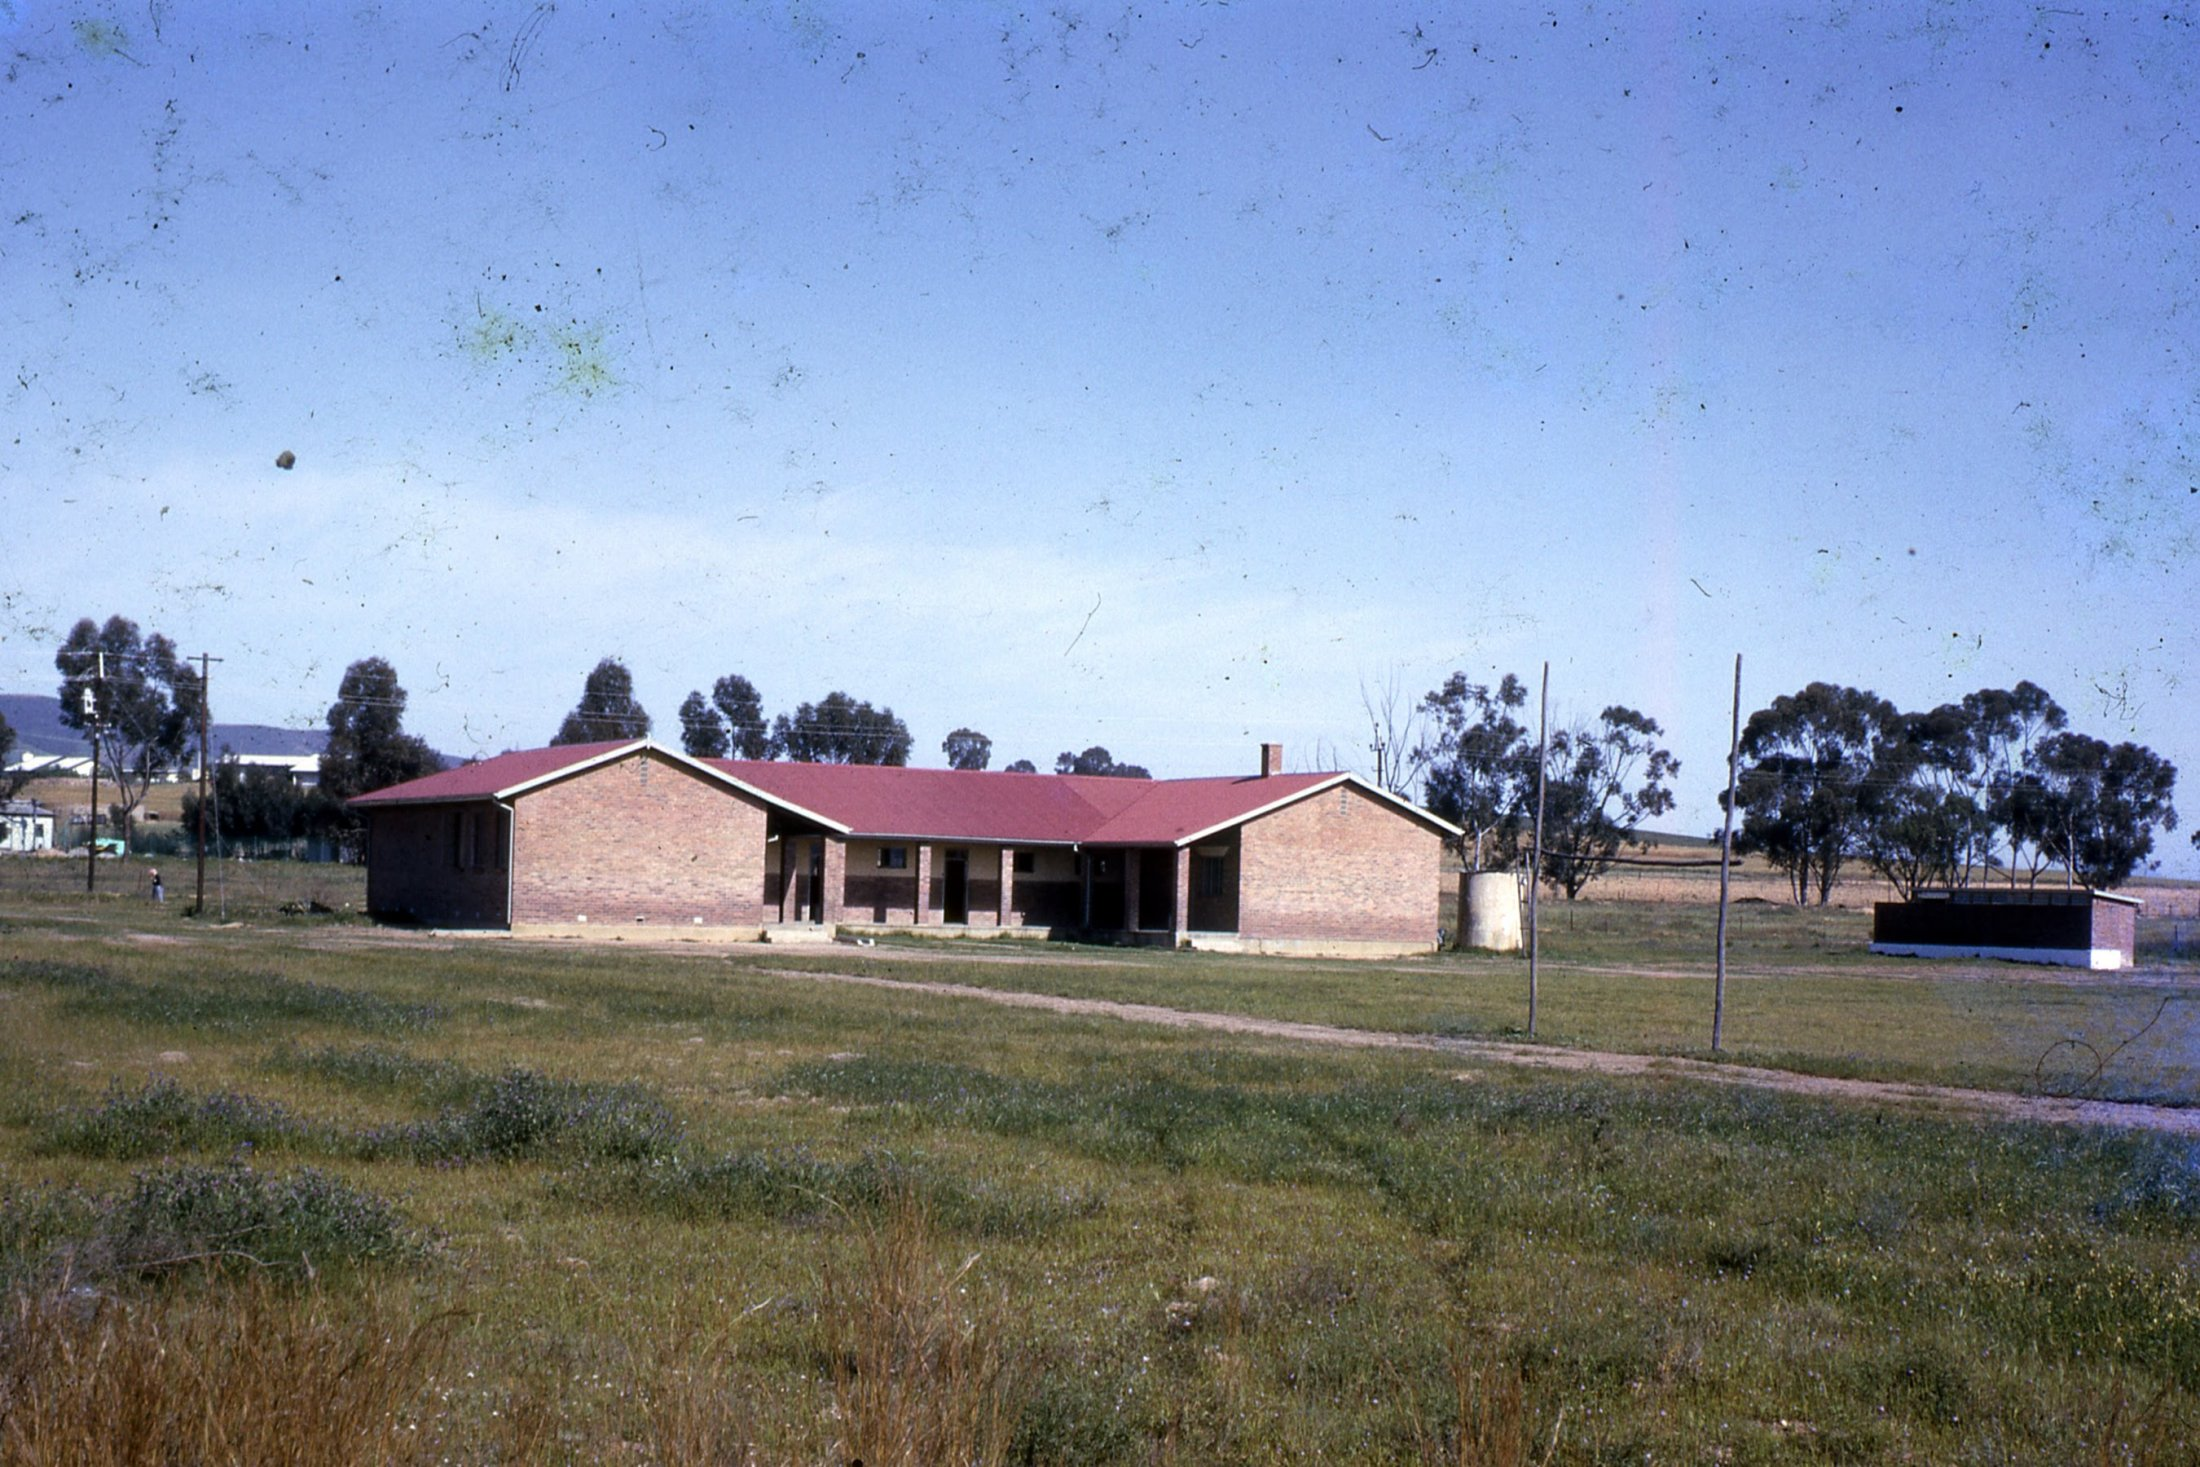 The NG Meiring Primary school 1960s